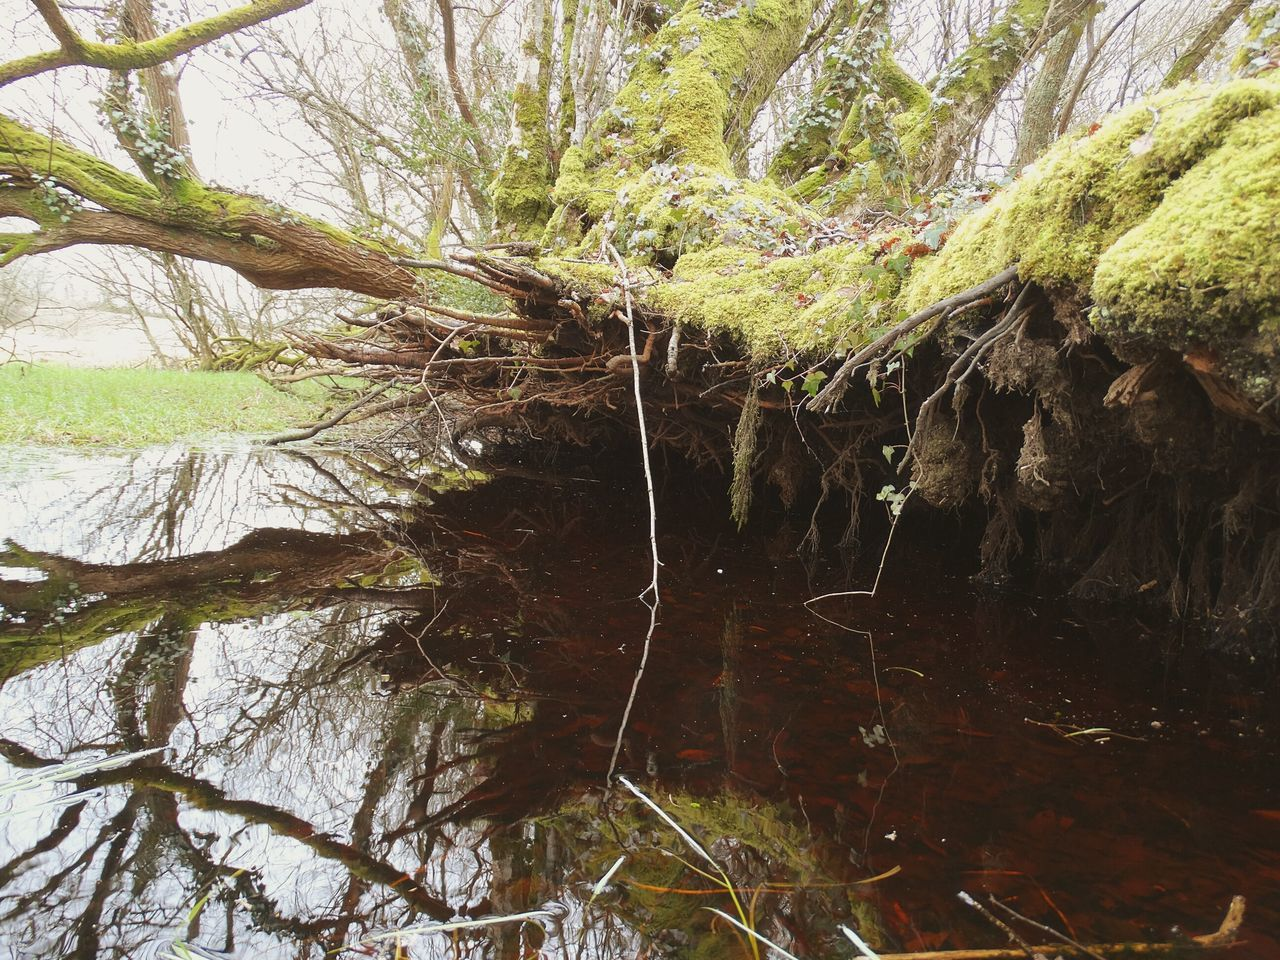 Tree Nature Growth Beauty In Nature Low Angle View Branch Outdoors Forest Water Tranquility Day Sky Fallen Tree Dark Forest Fallen Trees Over Water Winter Ploerdut France Morbihan Marsh Tranquility Wind Damage Fallen Tree Over A River Reflection Decay